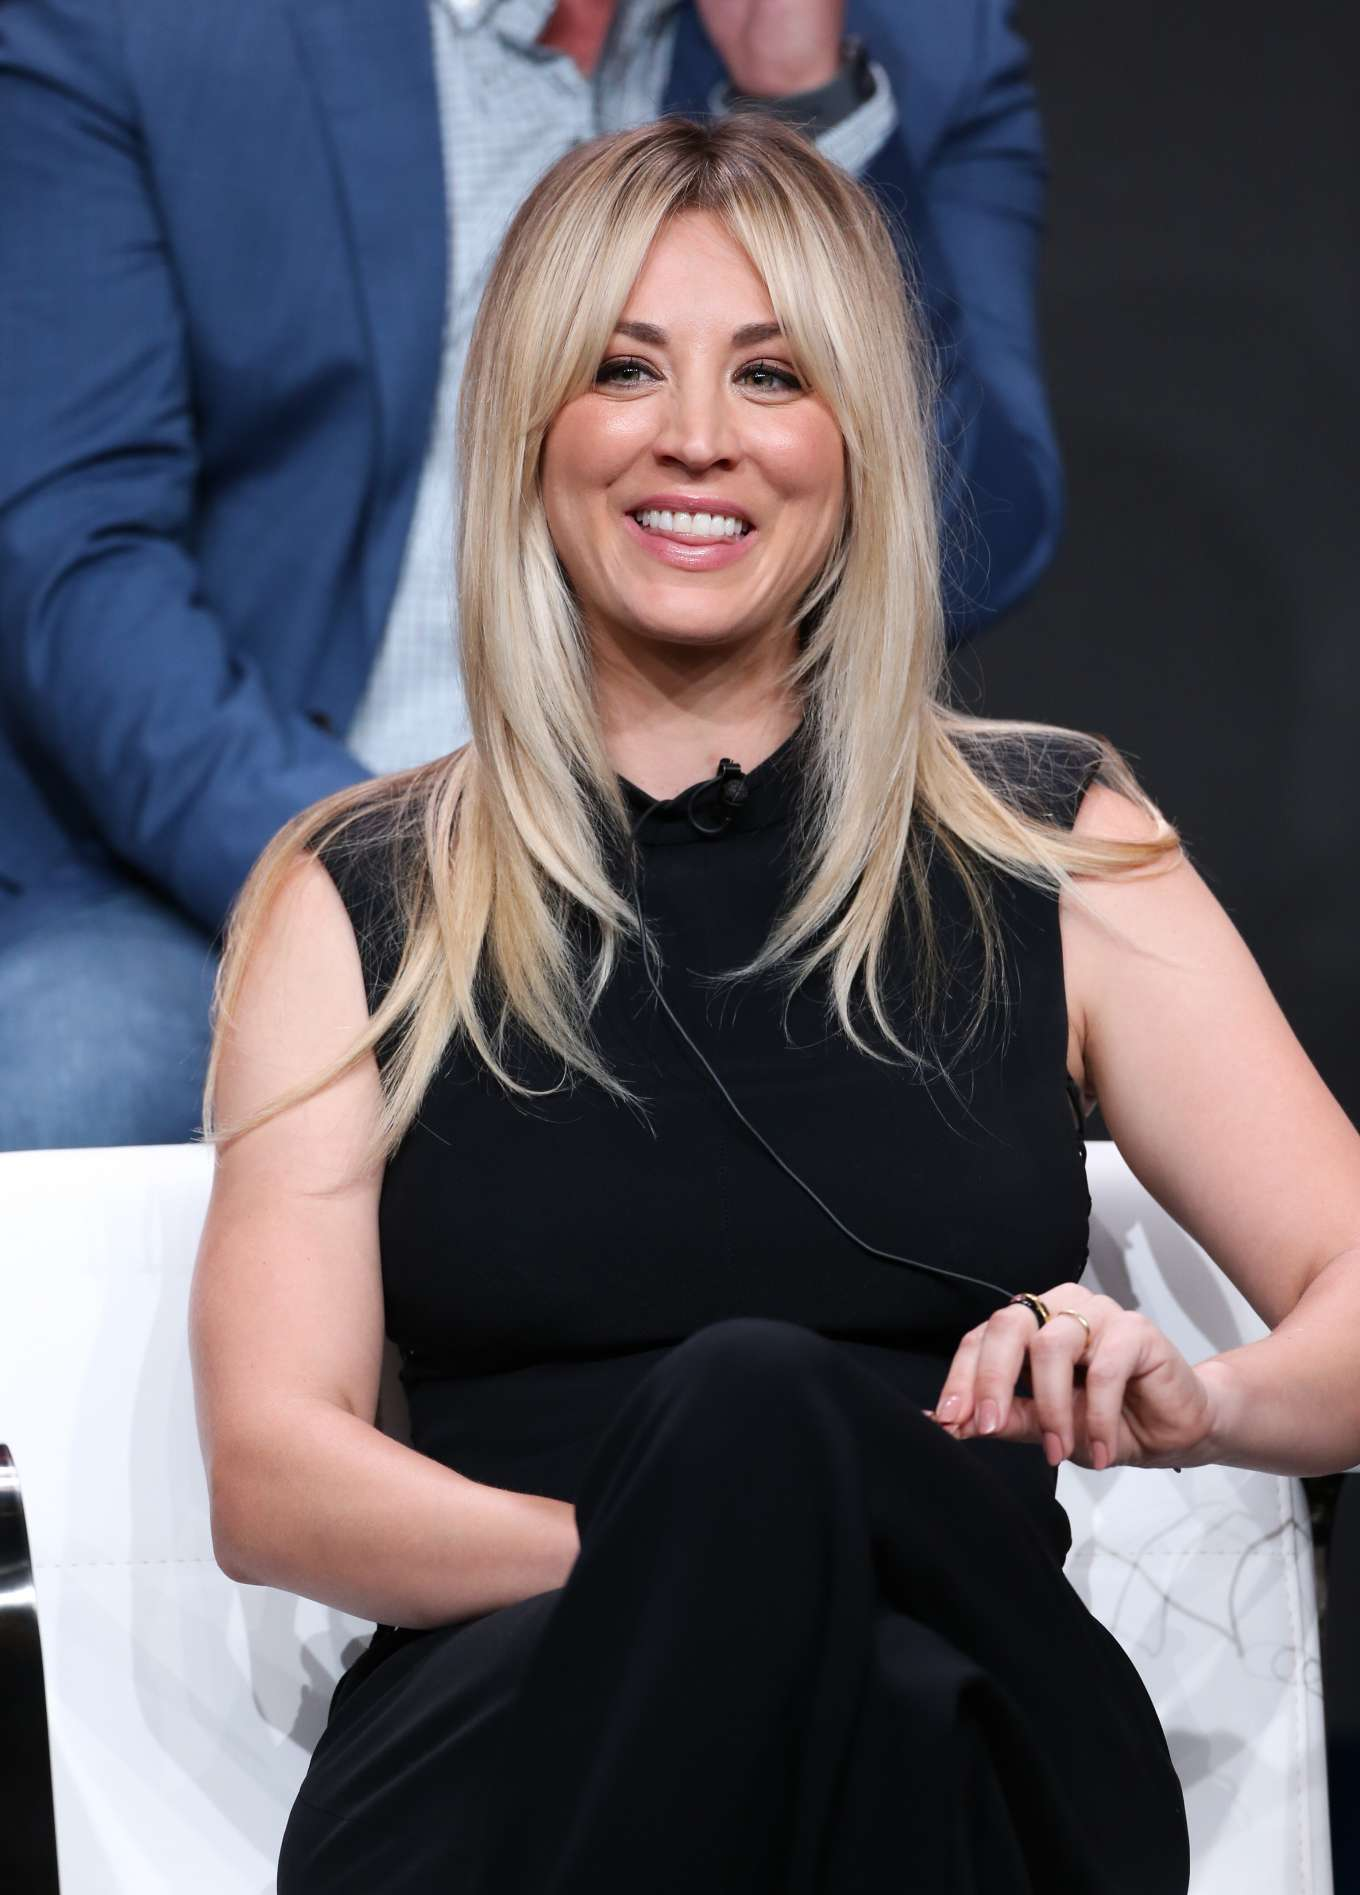 Kaley Cuoco - 'Harley Quinn' Panel at 2019 TCA Summer Press Tour in Los Angeles